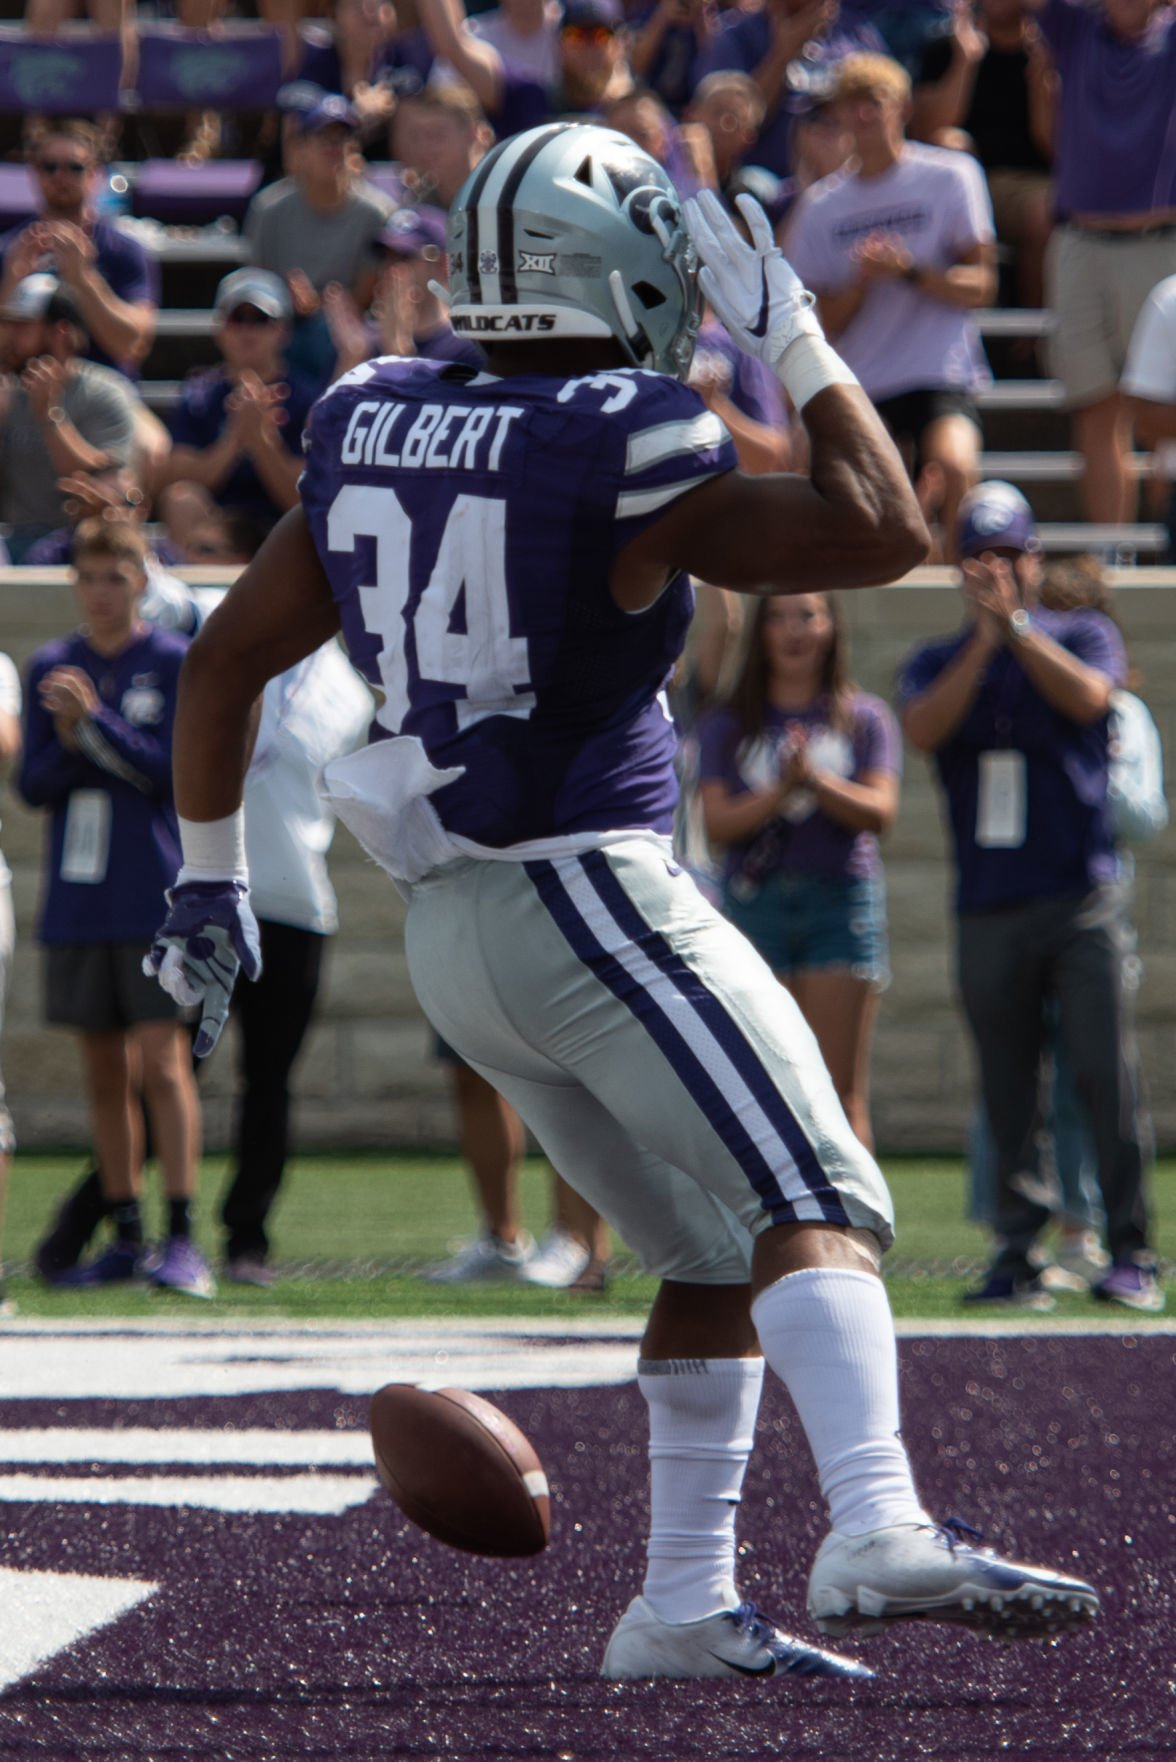 James Gilbert touchdown celebration